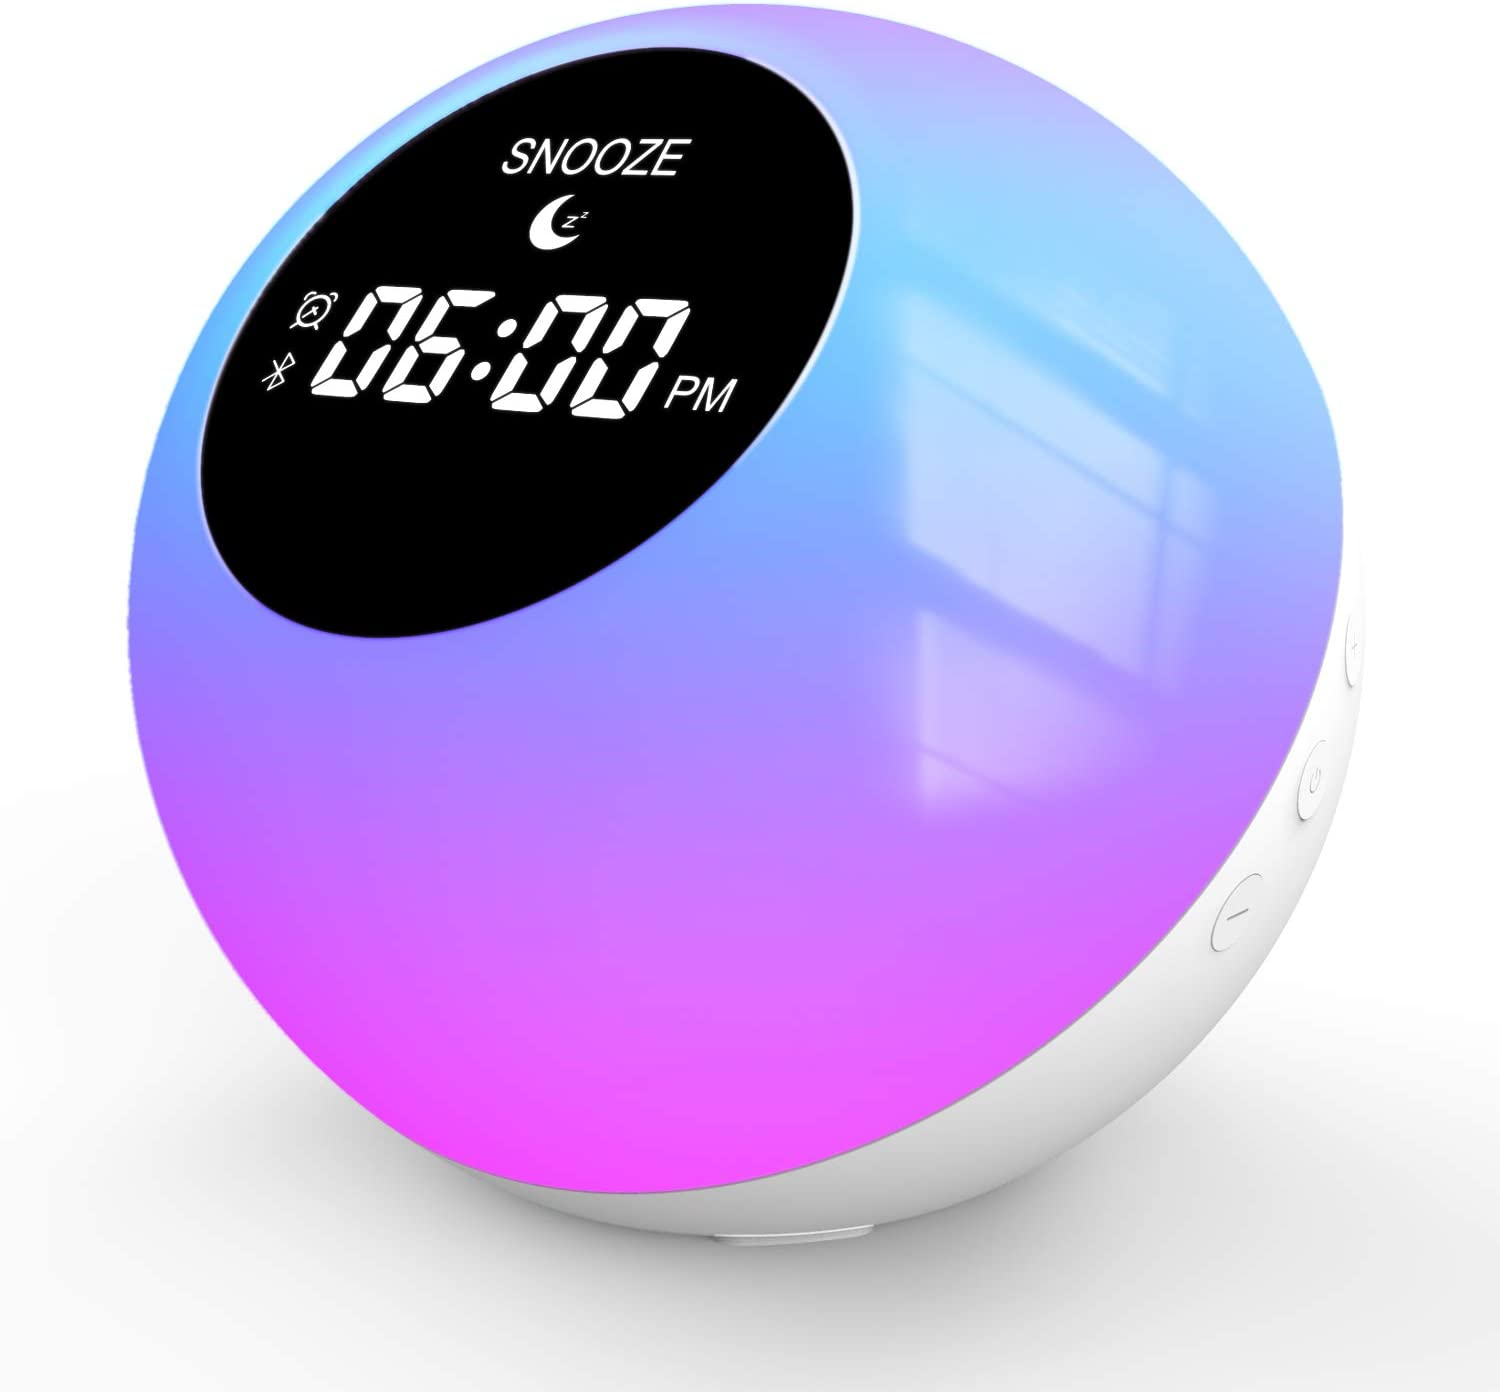 Sunrise Alarm Clock, Wake Up Light for Home|Bluetooth Speakers Alarm Clock for Heavy Sleepers, 7 Colored Atmosphere Lamp|Sleep Aid 6 Nature Sounds for Baby,Travel Bedrooms Office